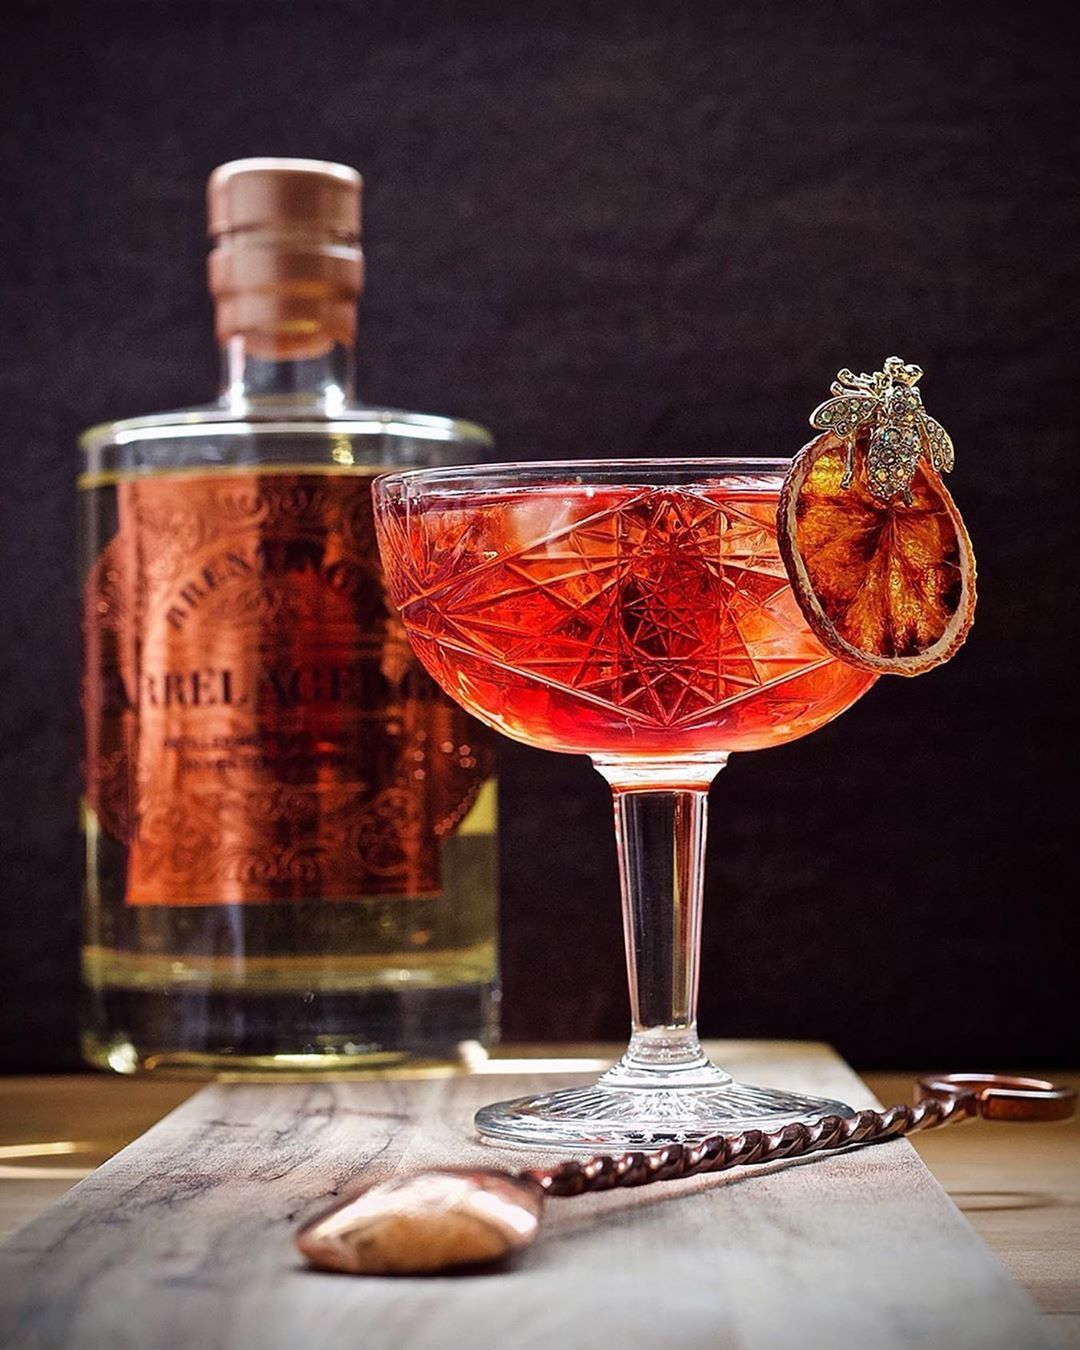 A Beautiful Creation Thought We Would Share With You Thecocktail Blog No Party Without Gin Or Vermouth Bitters Wine Beer Liqueur Clear Ice Blogge